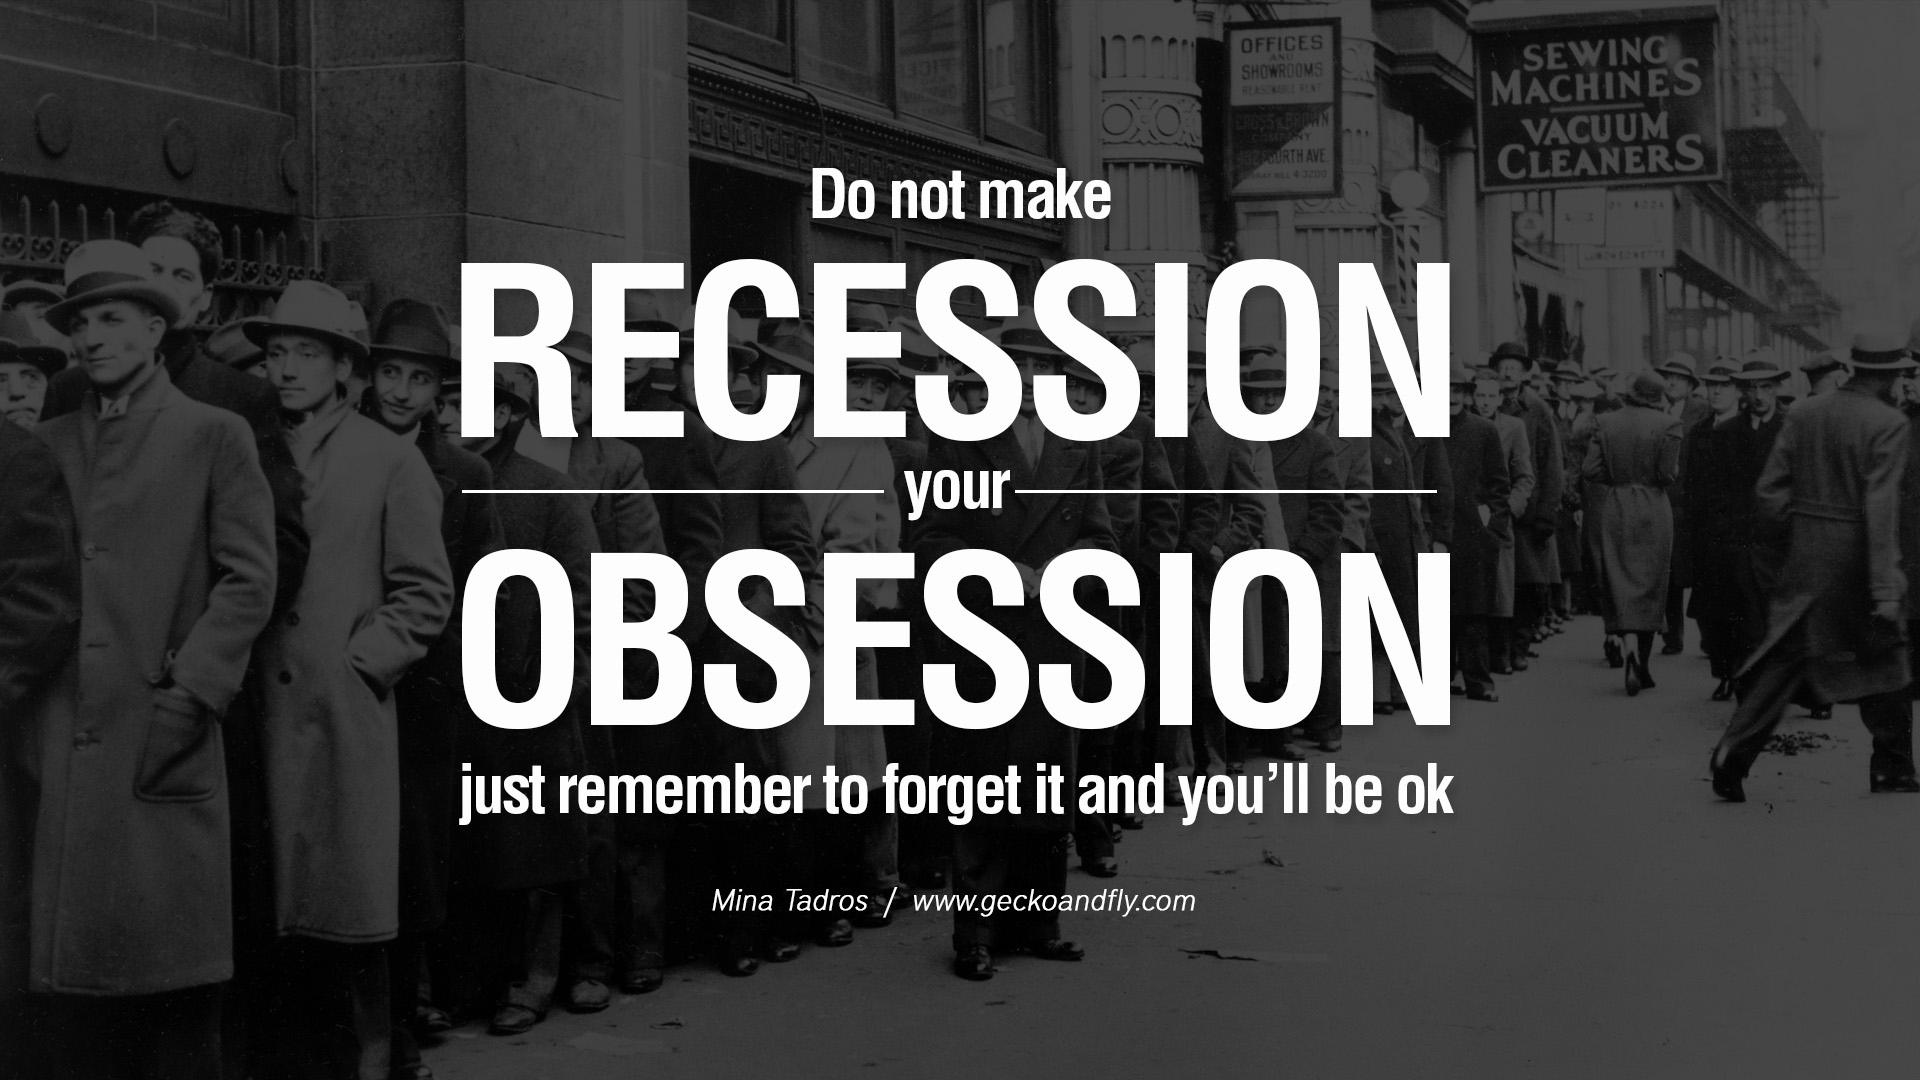 Quotes About The Economy: Great Quotes On The Economy. QuotesGram